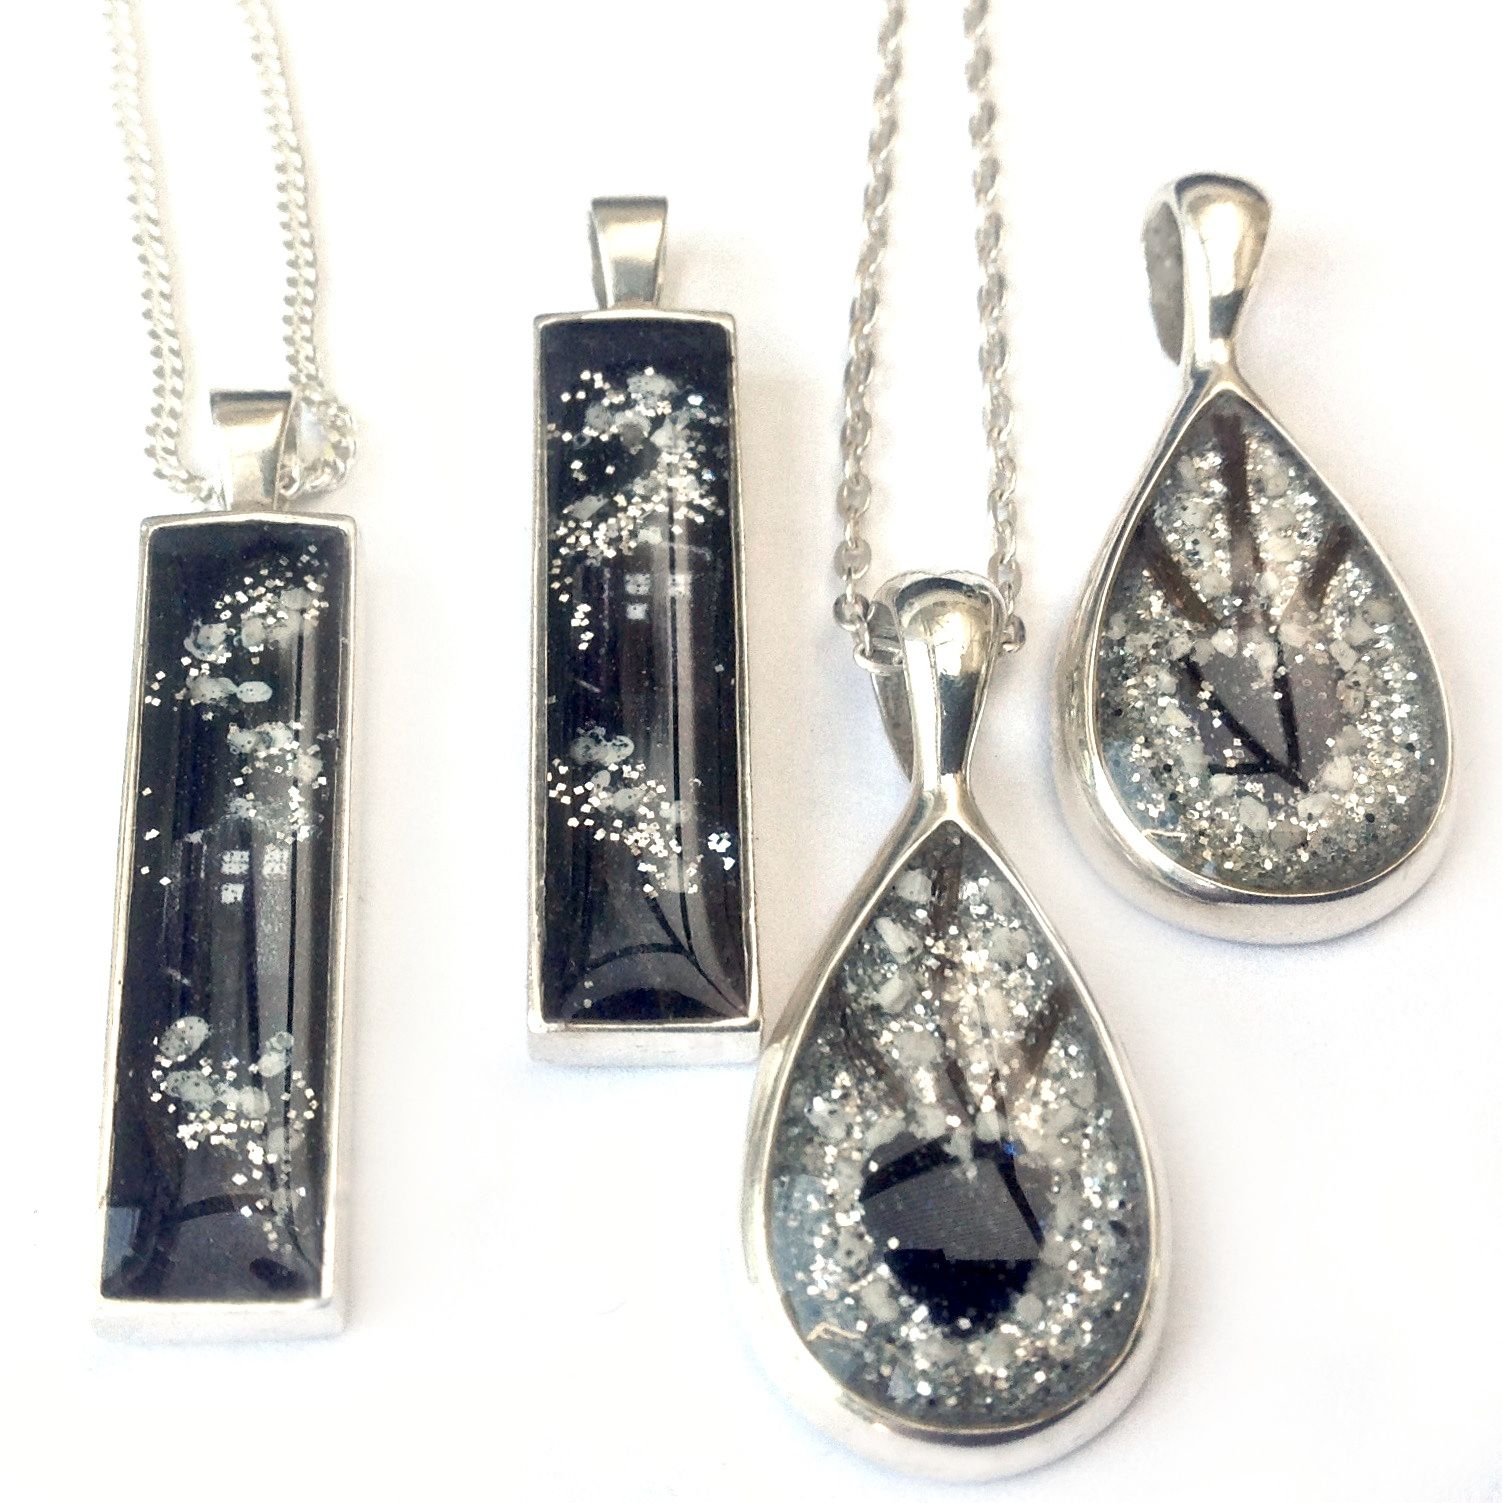 15+ How to put ashes in cremation jewelry ideas